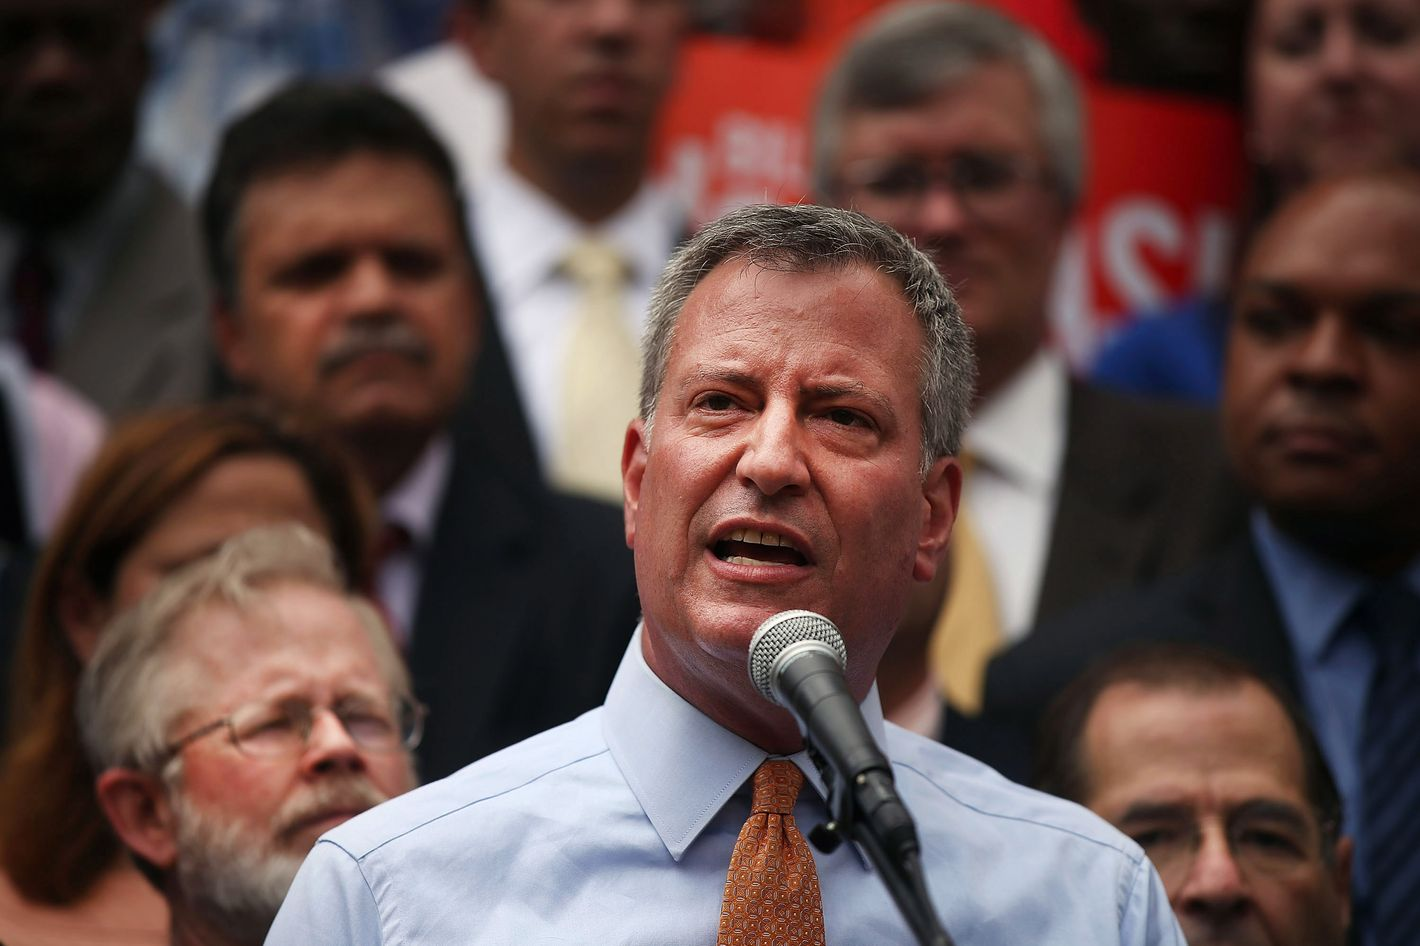 """Democratic mayoral front-runner Bill de Blasio attends a """"rally for progressive change"""" where he received endorsements from more than 25 progressive leaders and organizations on September 12, 2013 in the Brooklyn borough of New York City. Bill Thompson, who came in second in the Democratic primary, has so far refused to concede to de Blasio until it is confirmed by the election board that de Blasio got 40 percent of the vote."""